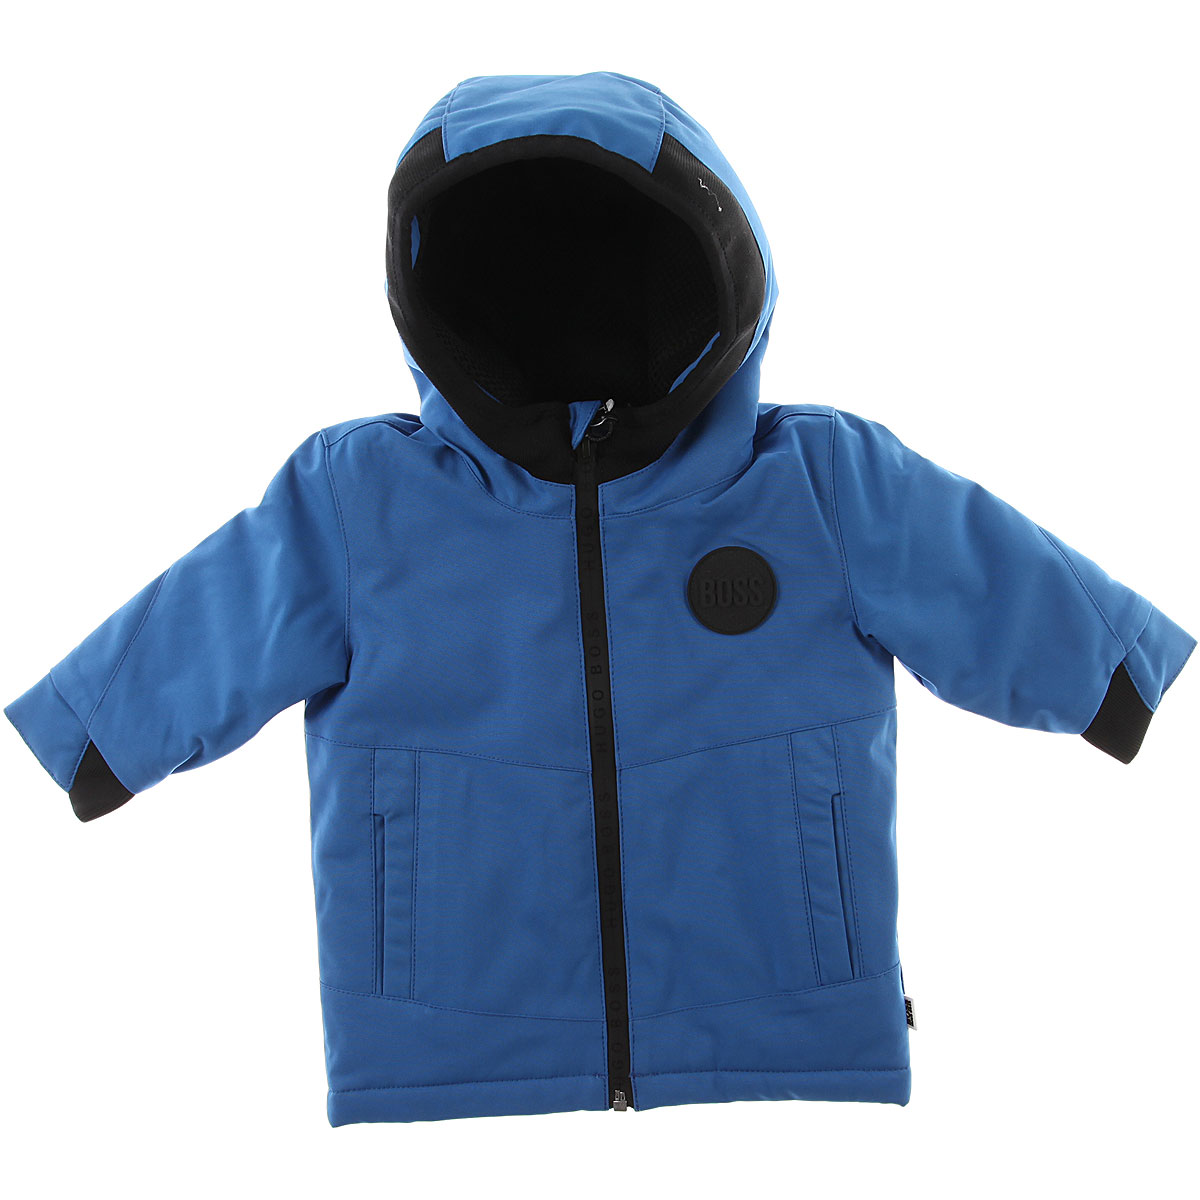 Image of Hugo Boss Baby Down Jacket for Boys, Blue Royal, polyester, 2017, 12M 18M 2Y 3Y 6M 9M